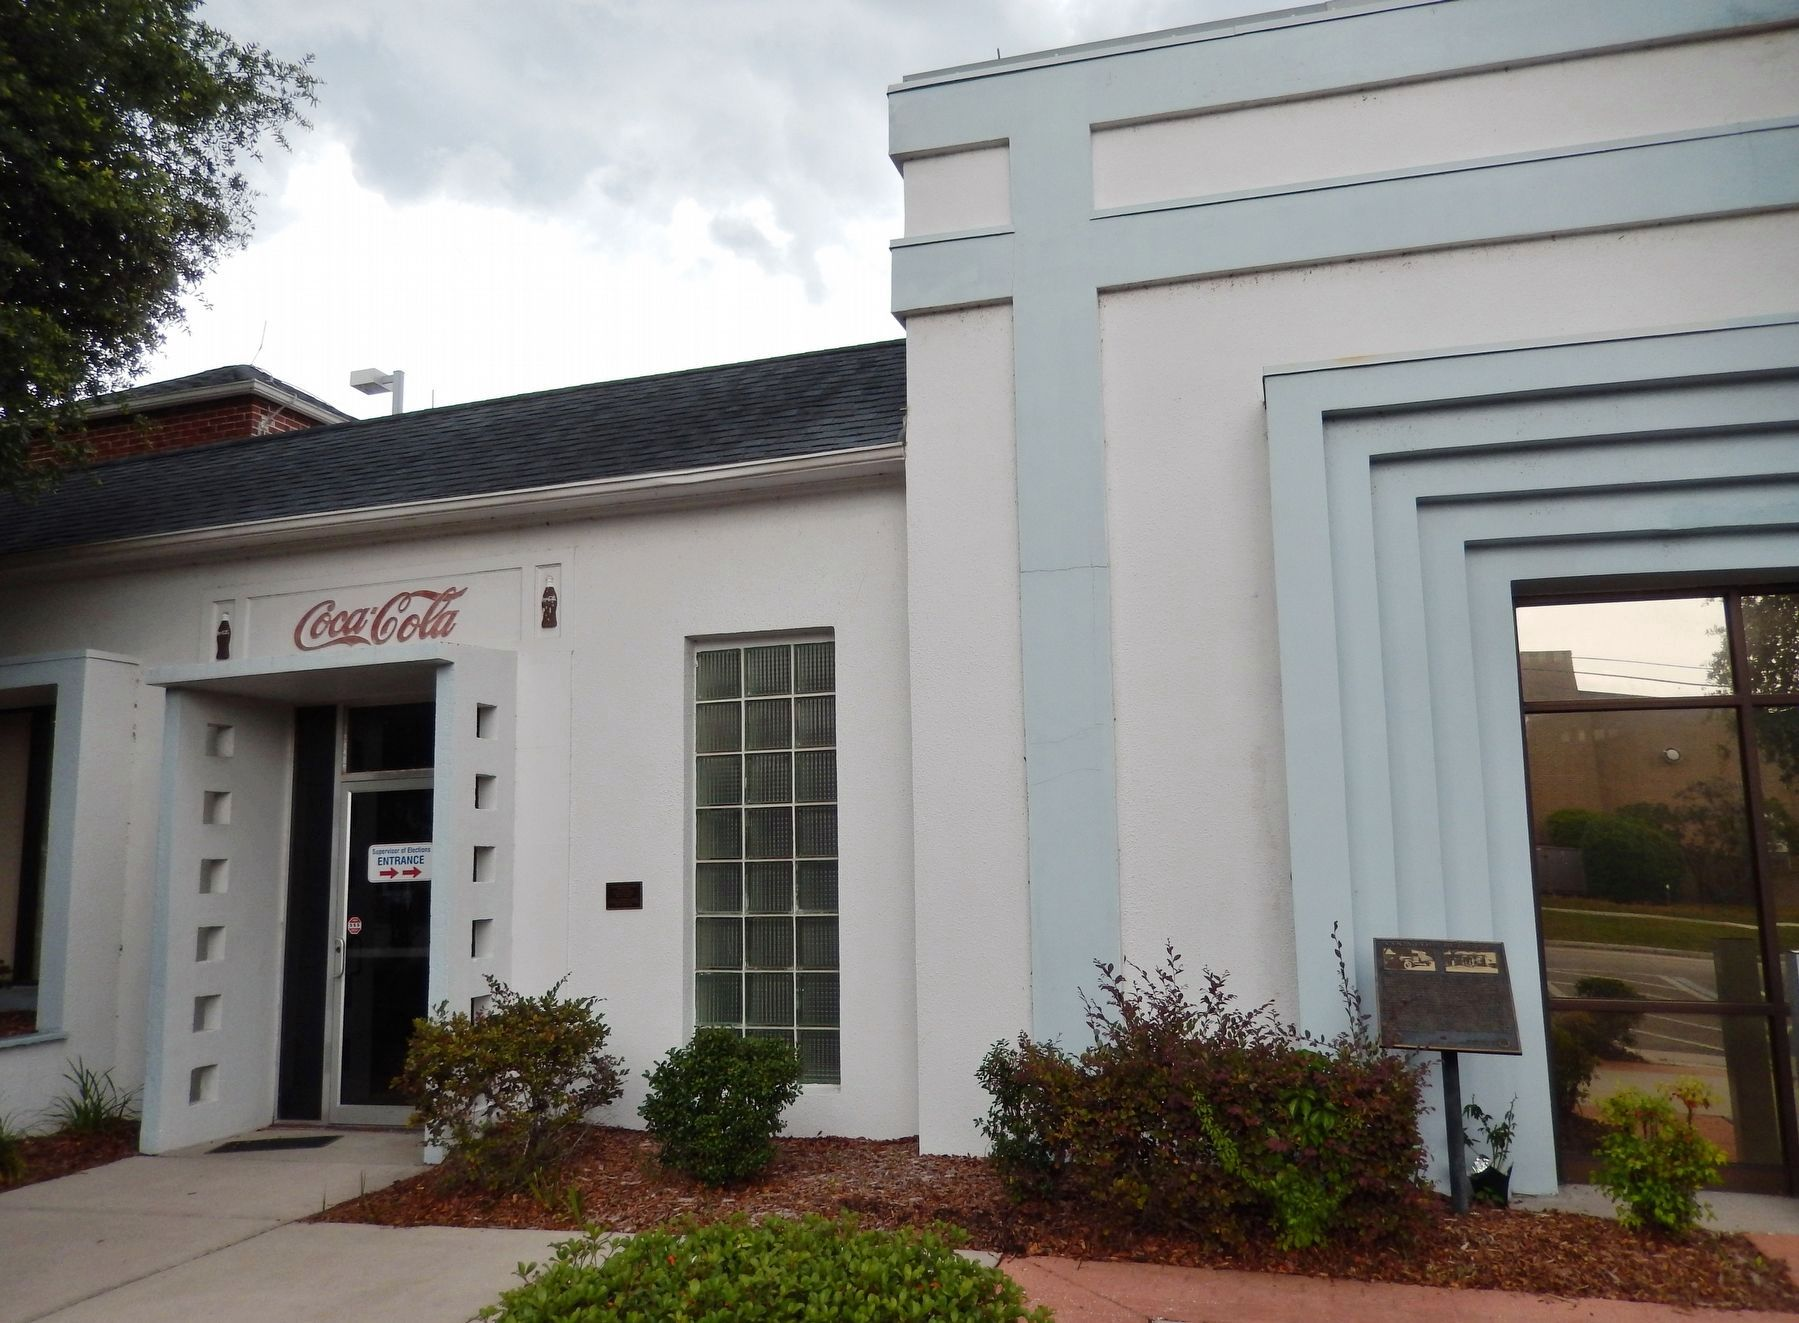 Coca-Cola Building (<i>middle view; marker visible at right</i>) image. Click for full size.